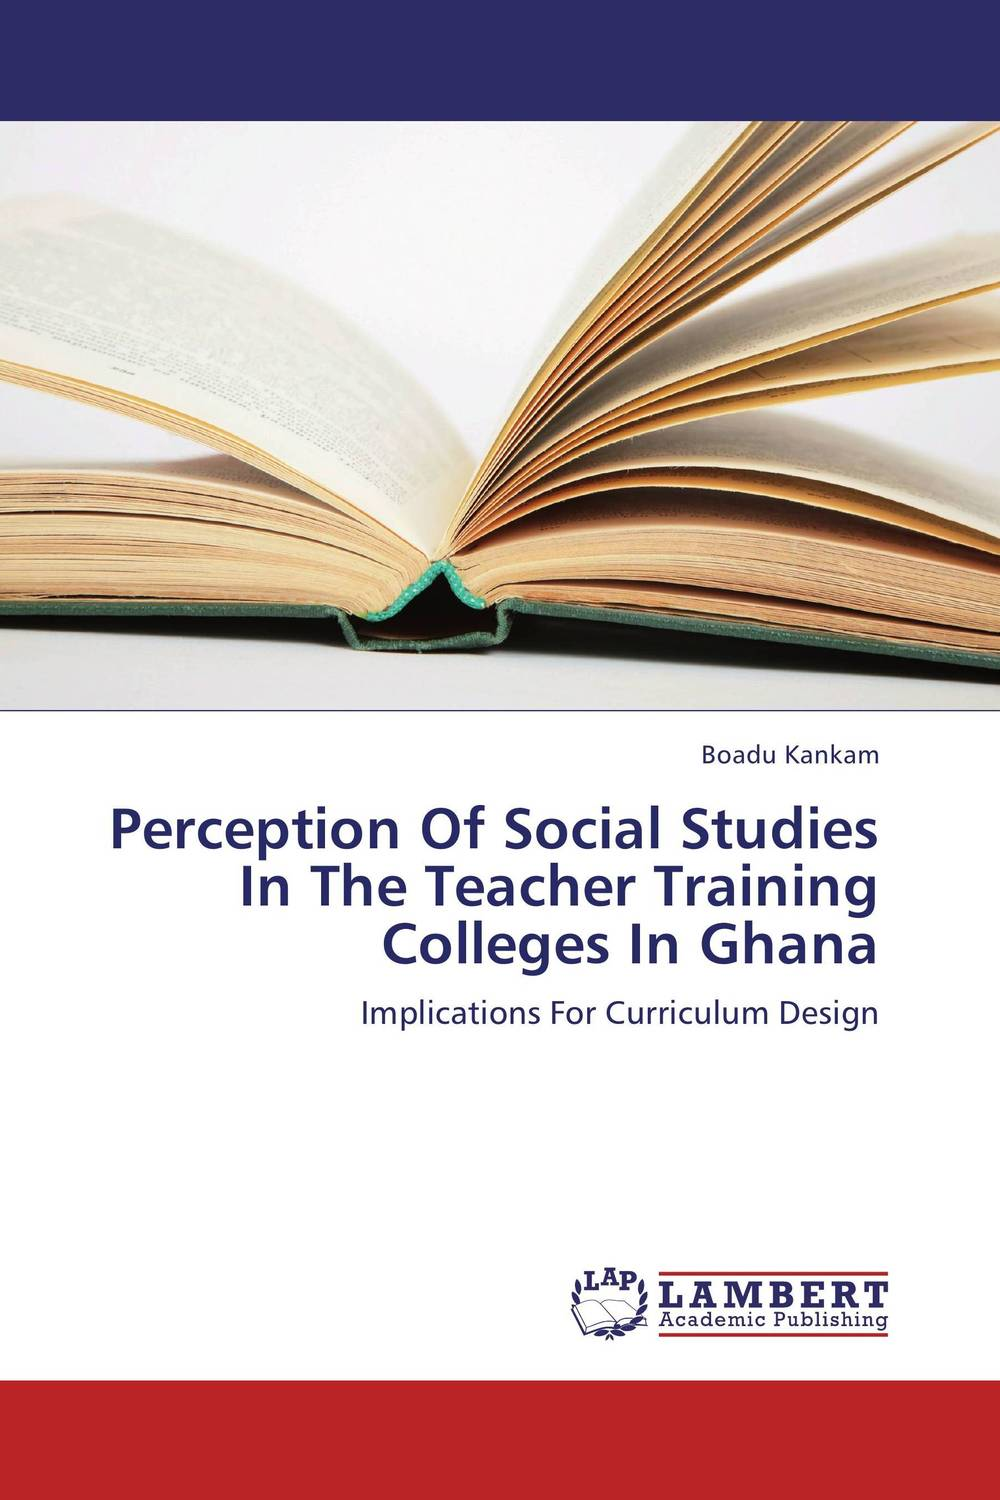 Perception Of Social Studies In The Teacher Training Colleges In Ghana